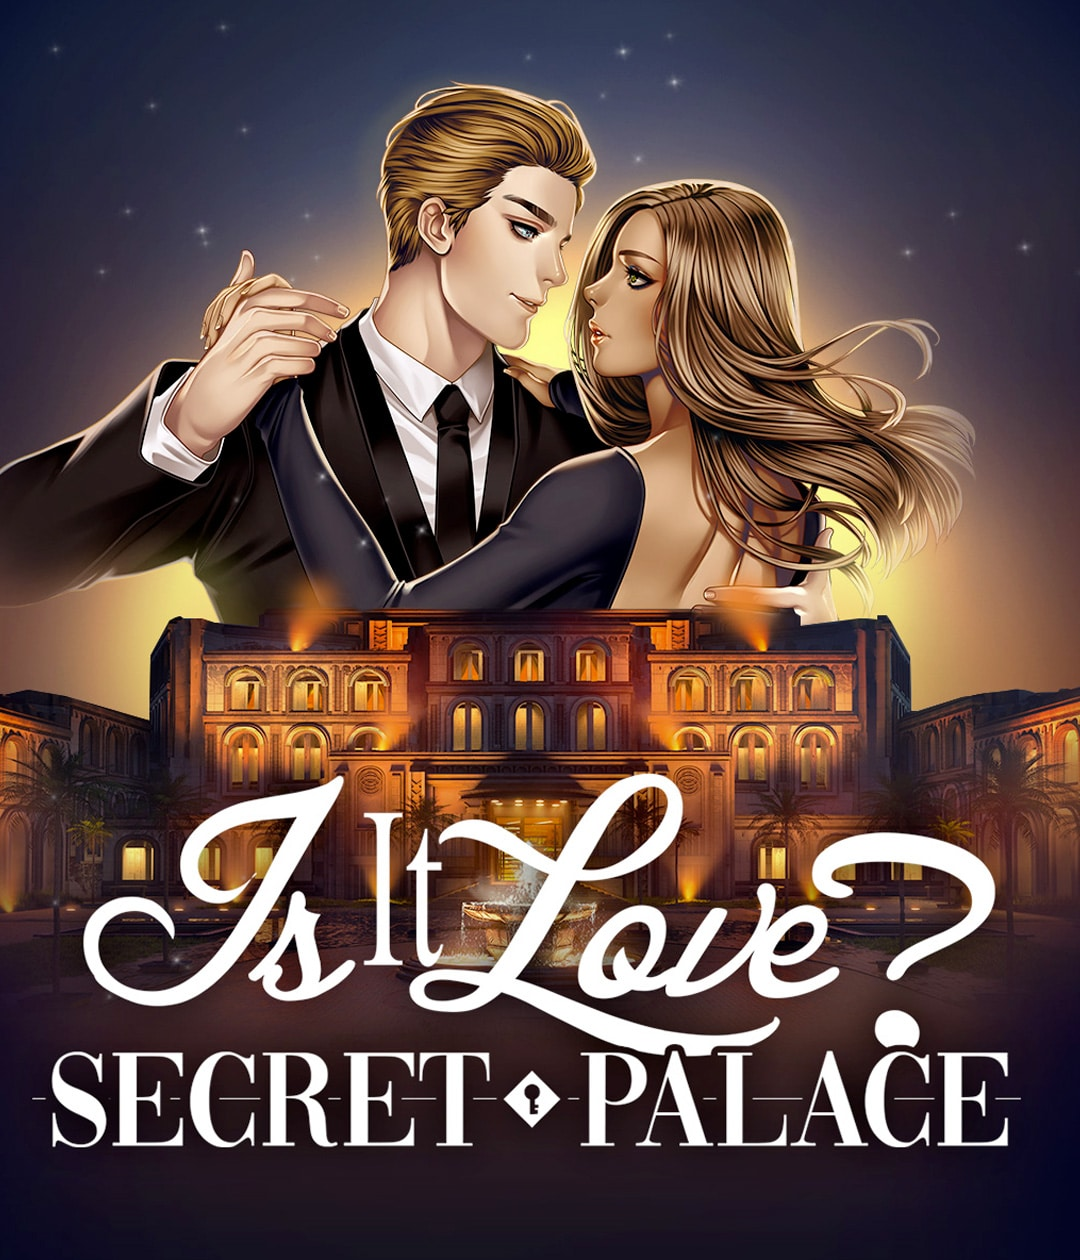 Affiche de l'histoire secret palace du jeu Is It Love